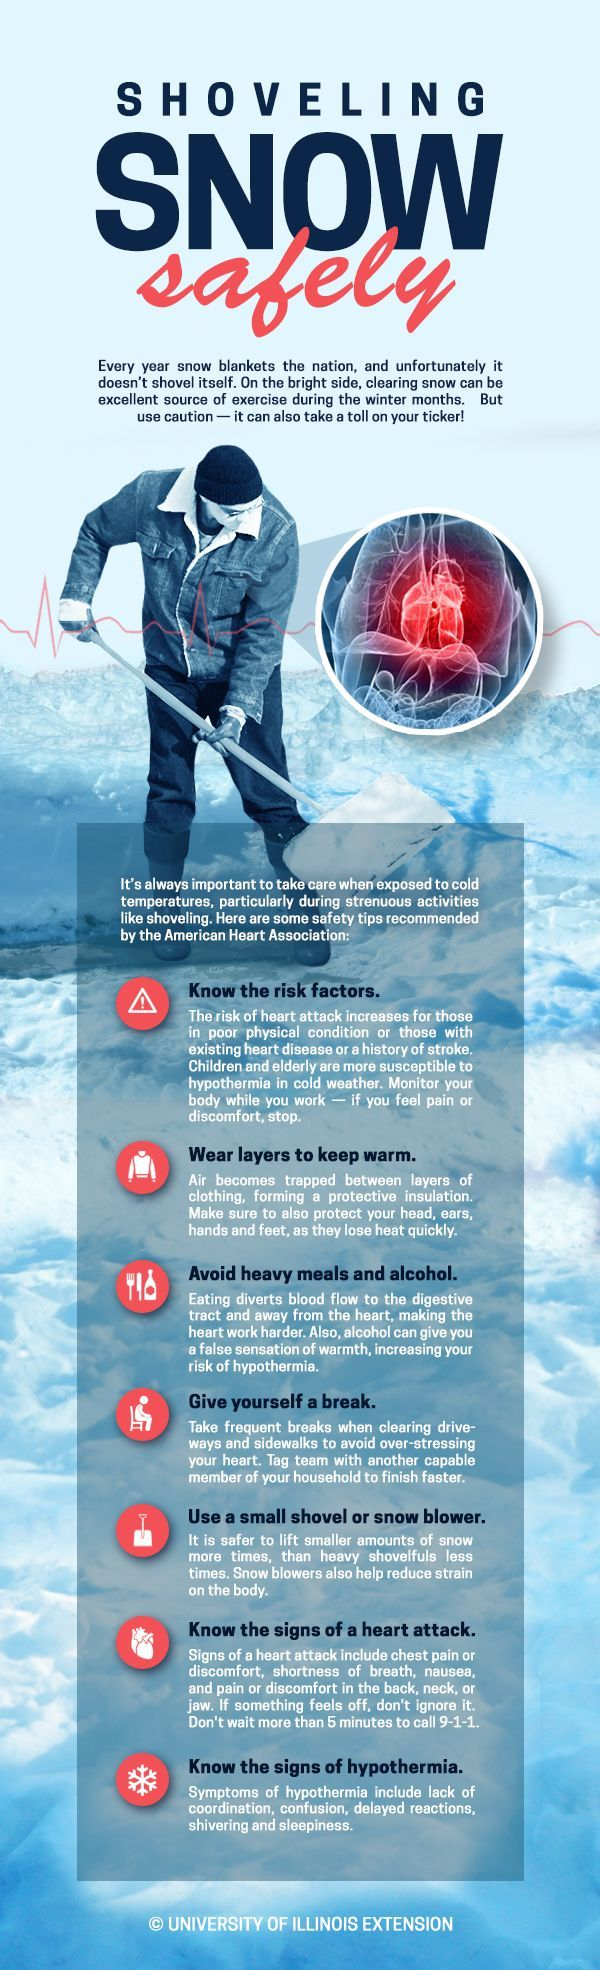 Shoveling Snow Safely Cold weather tips! infographic